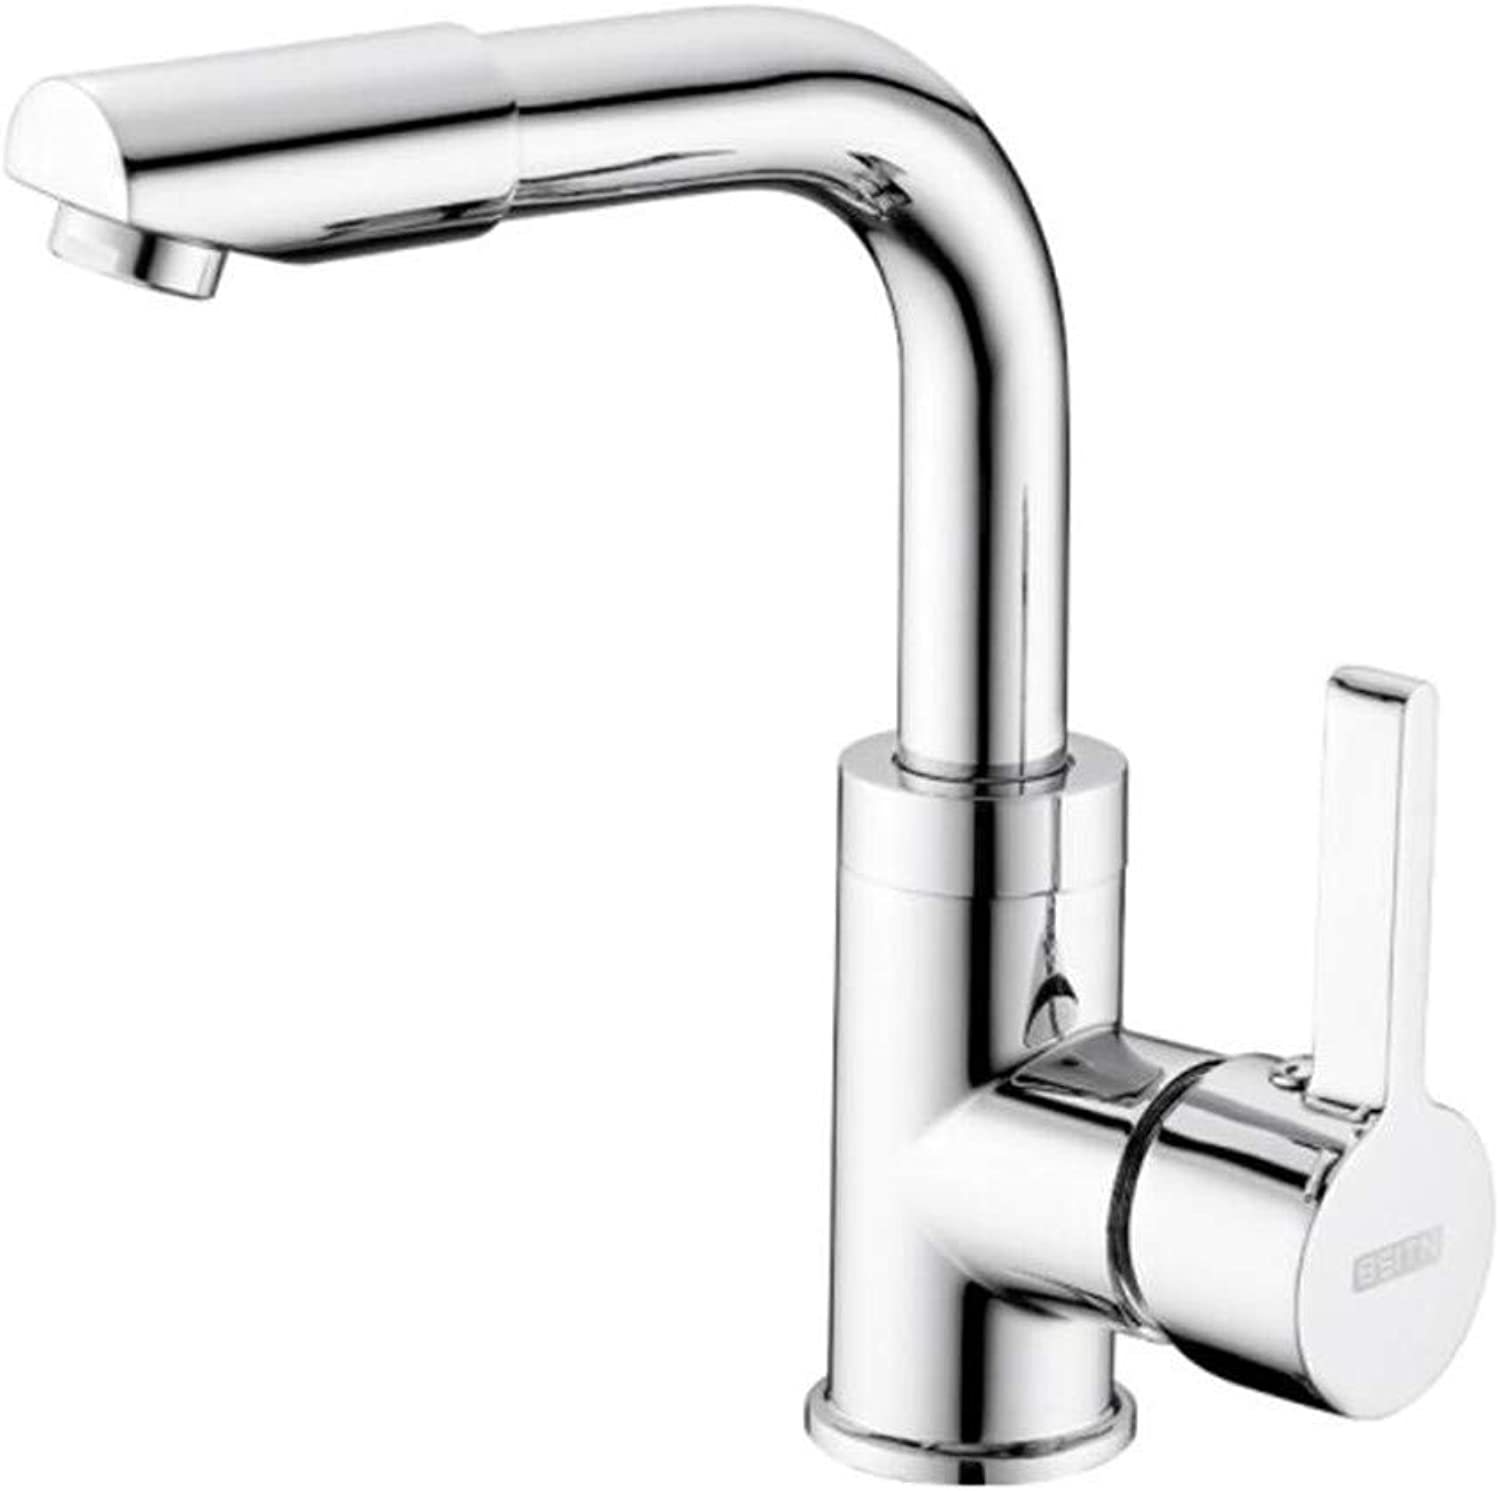 Taps Mixer?Swivel?Faucet Sink Facebasin Faucet Universal Outlet Water Cooling and Hot redary Single-Hole Faucet Toilet Kitchen Washbasin Faucet